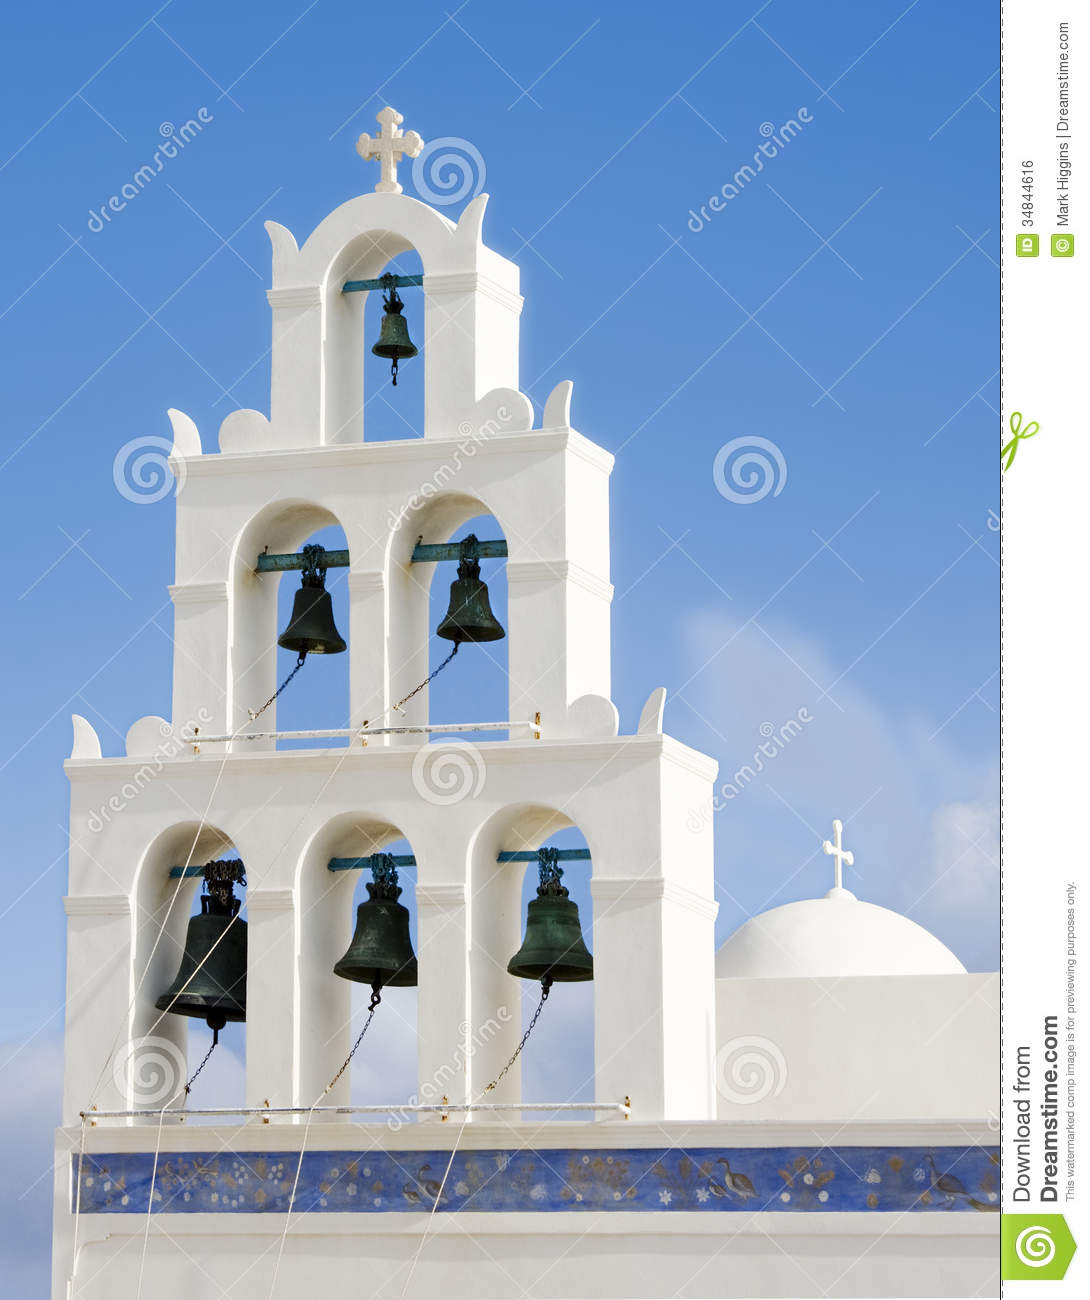 Santorini Building Greece Royalty Free Stock Image Image